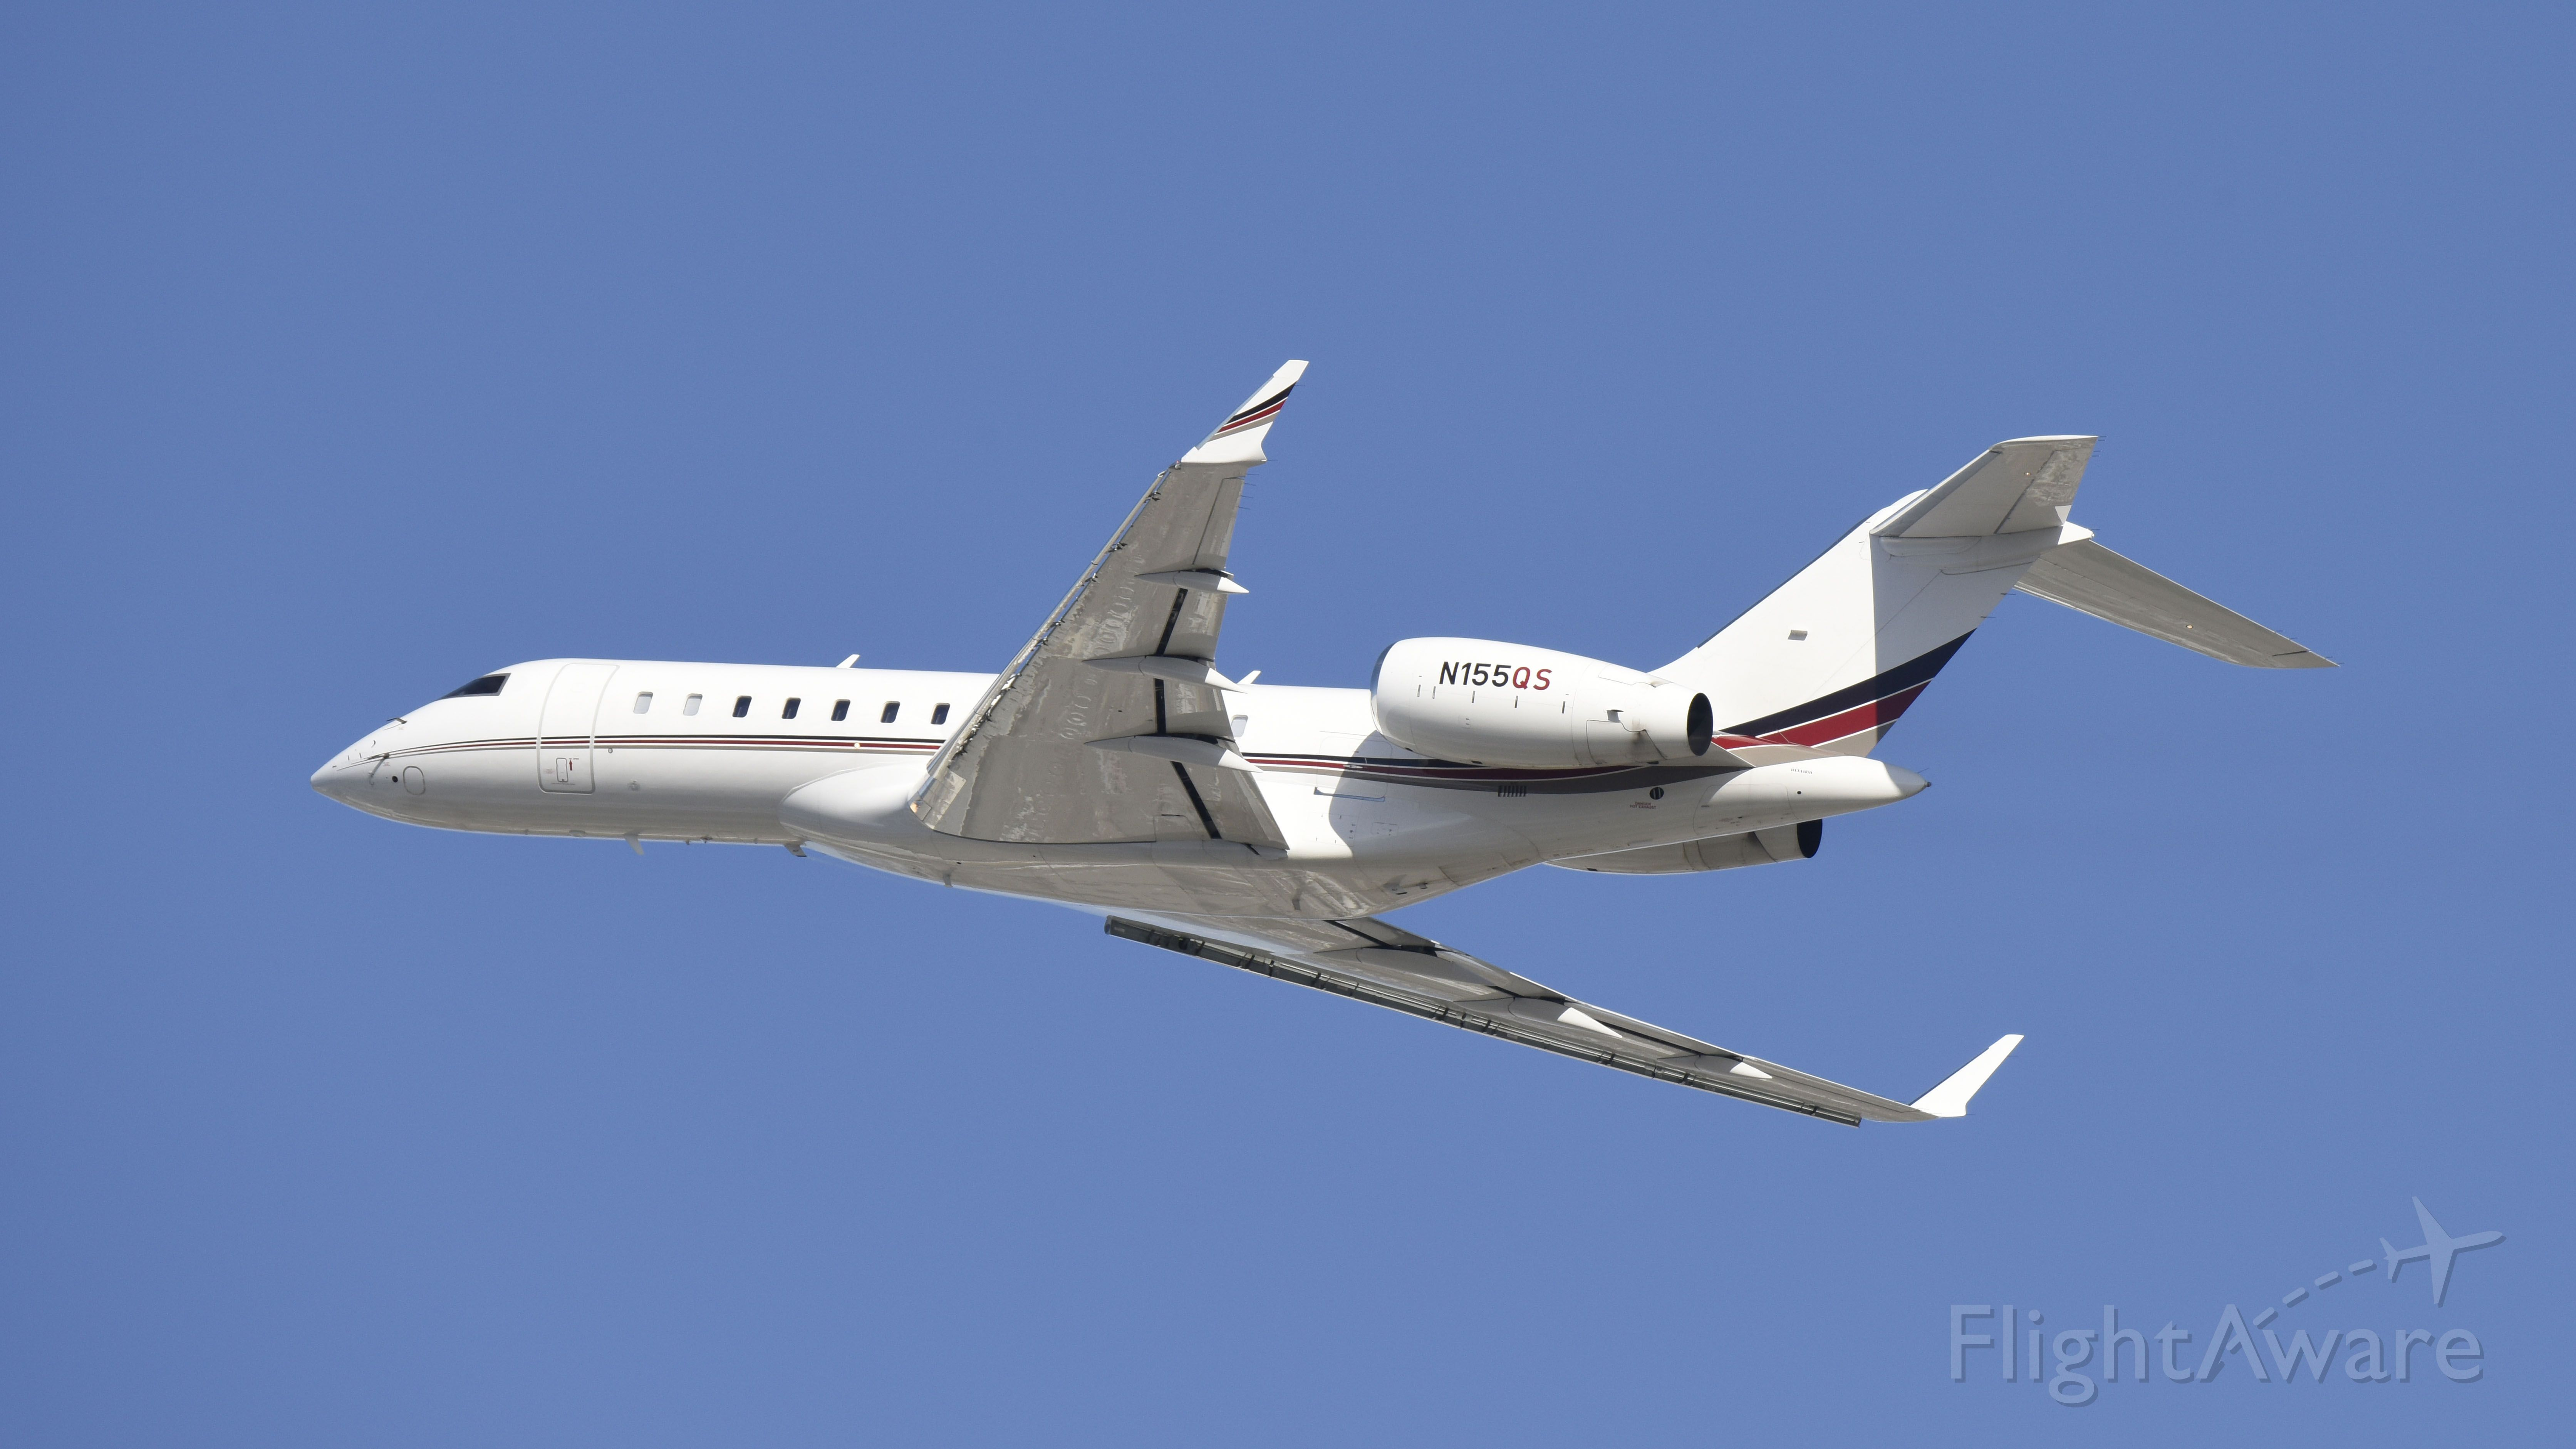 Bombardier Global Express (N155QS) - Departing LAX on 25L